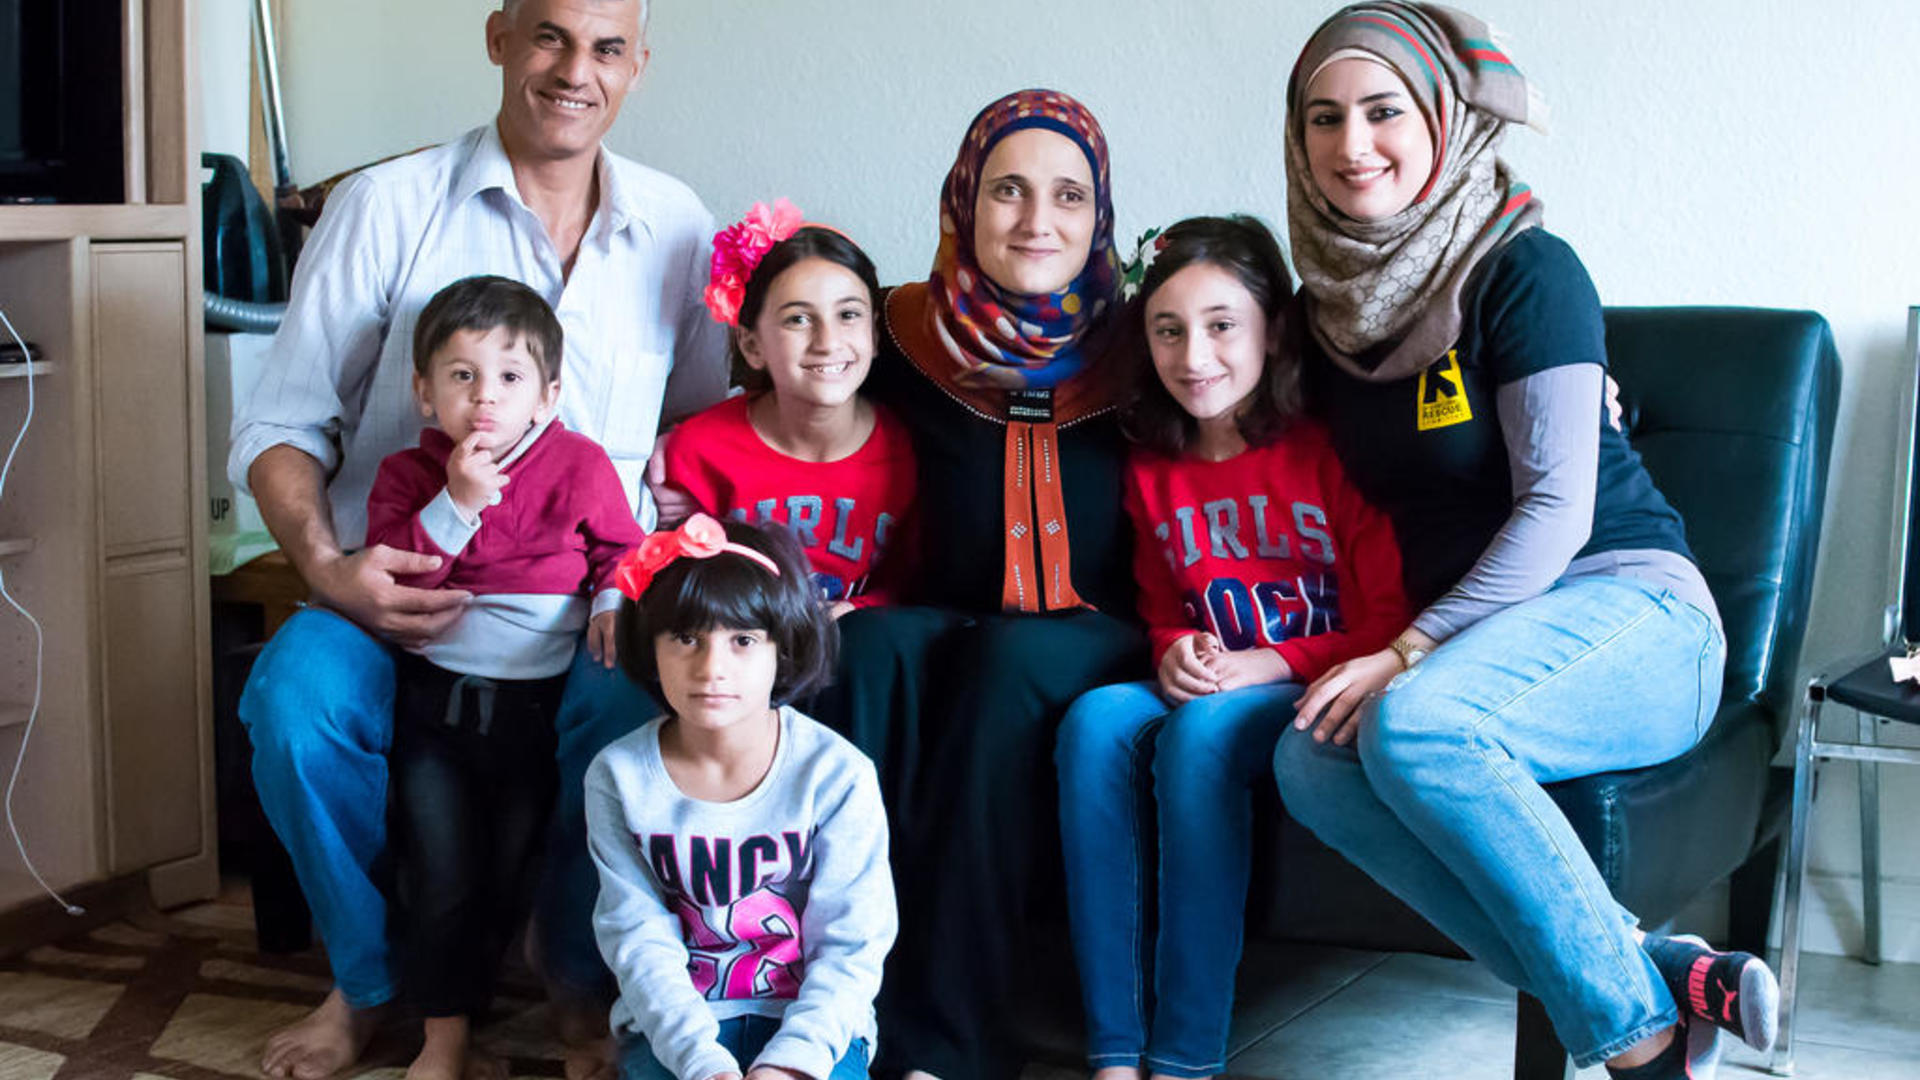 The Tlas family, refugees from Syria, pose for a photo with an IRC staff member in their new home in San Diego